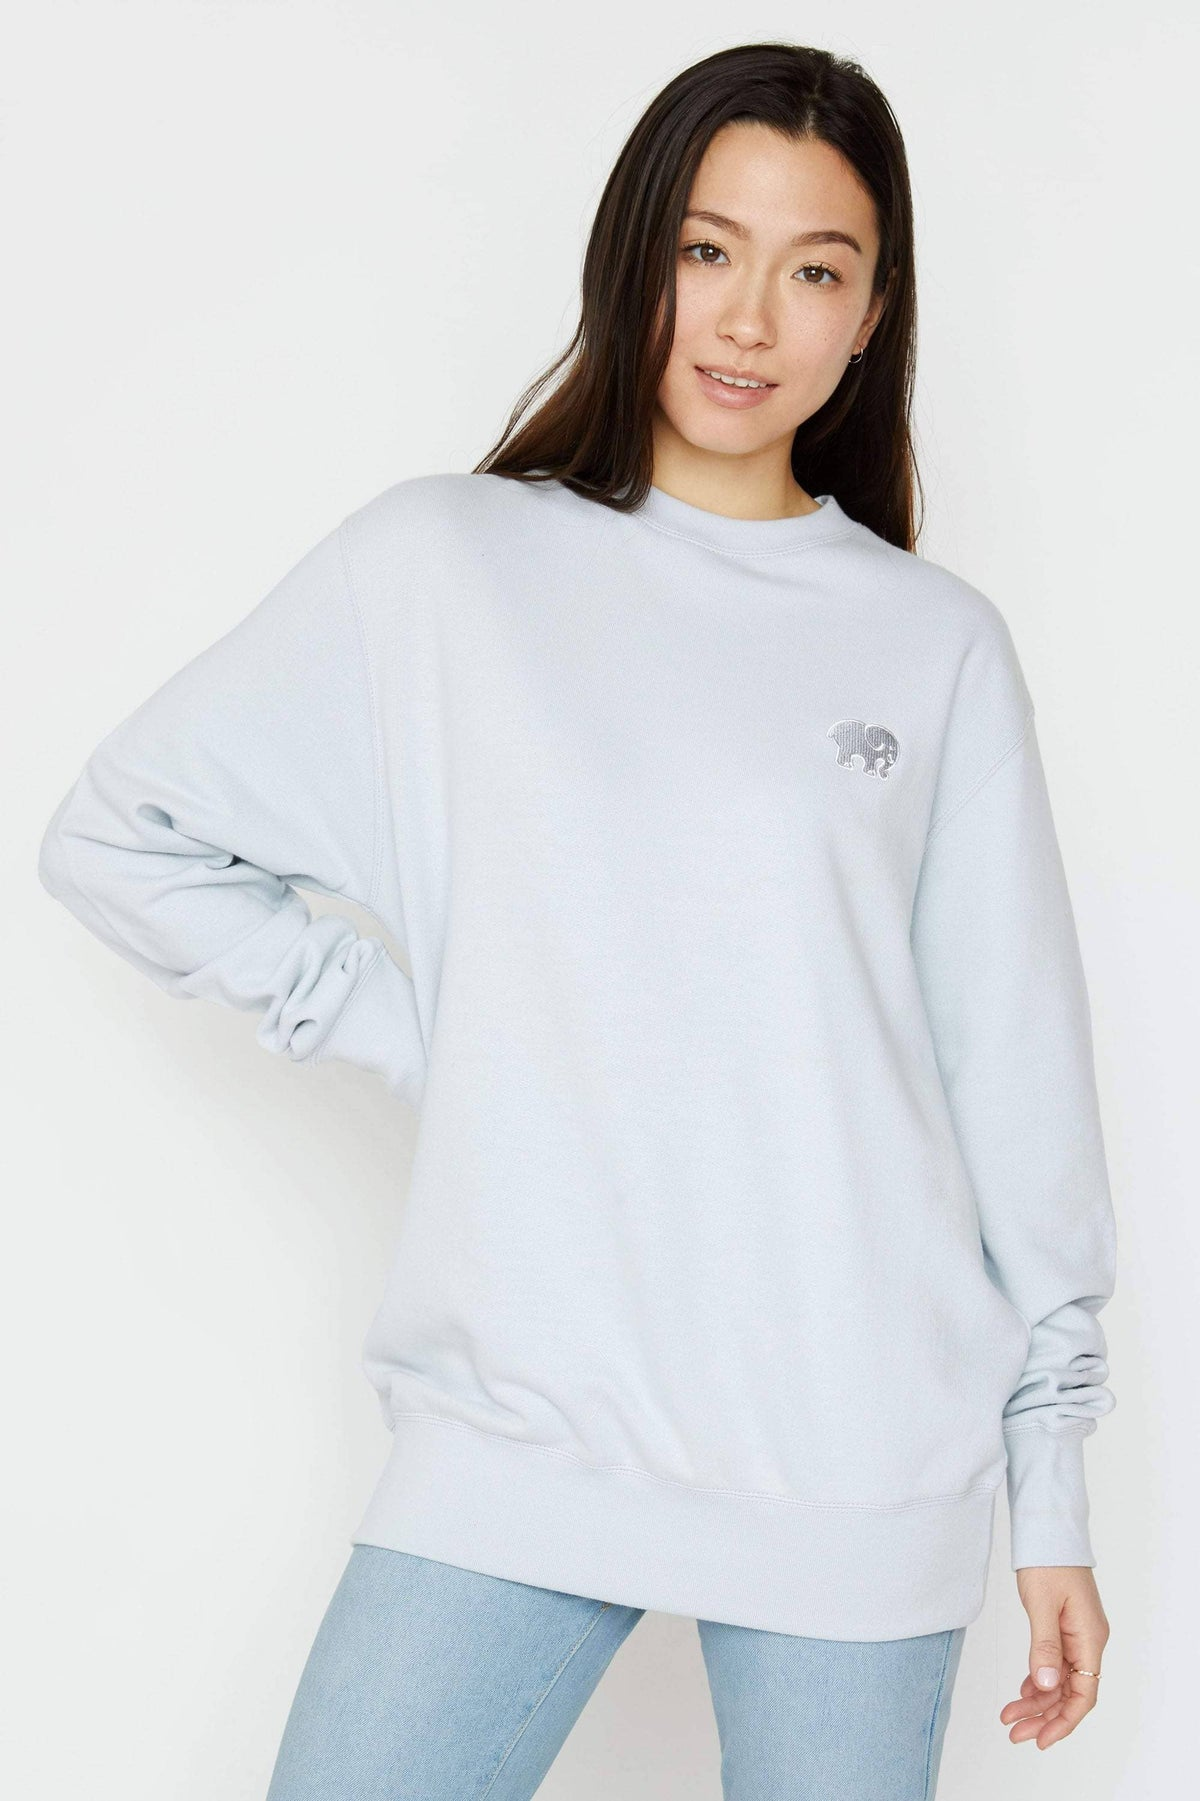 Ivory Ella Women's Sweatshirts XS Moonstone Organic French Terry Crewneck